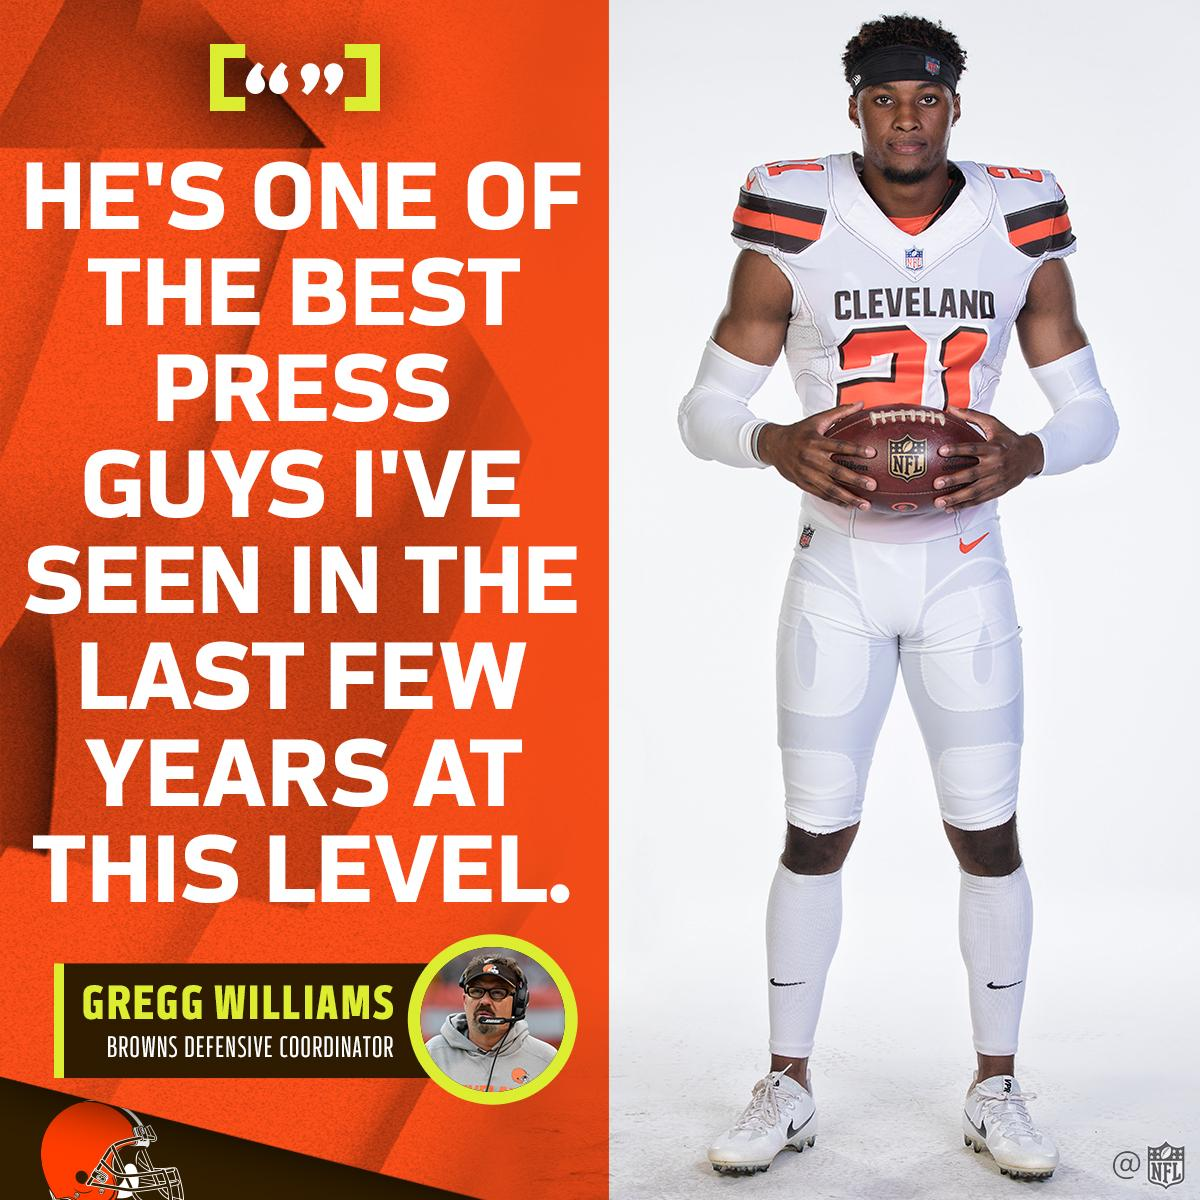 The next @shonrp2?  He's drawing rave reviews in the @Browns secondary: https://t.co/FPV10Y0jqT https://t.co/mPML2lRY76